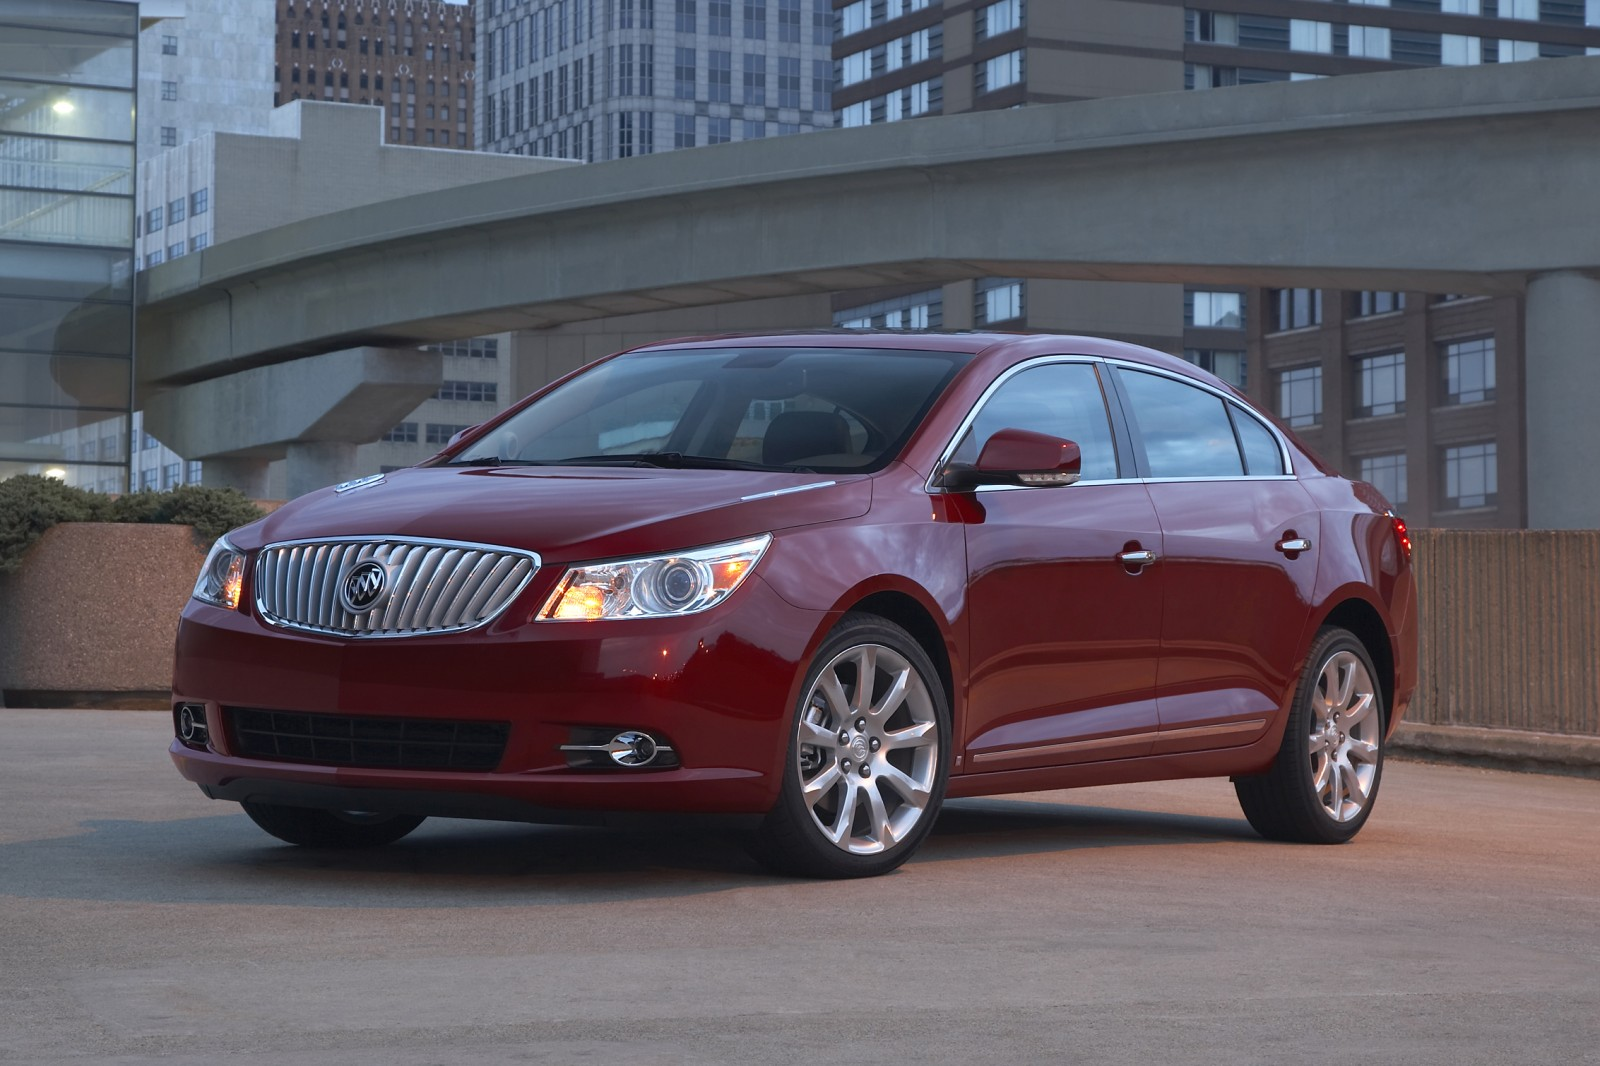 New Car Review: 2013 Buick LaCrosse